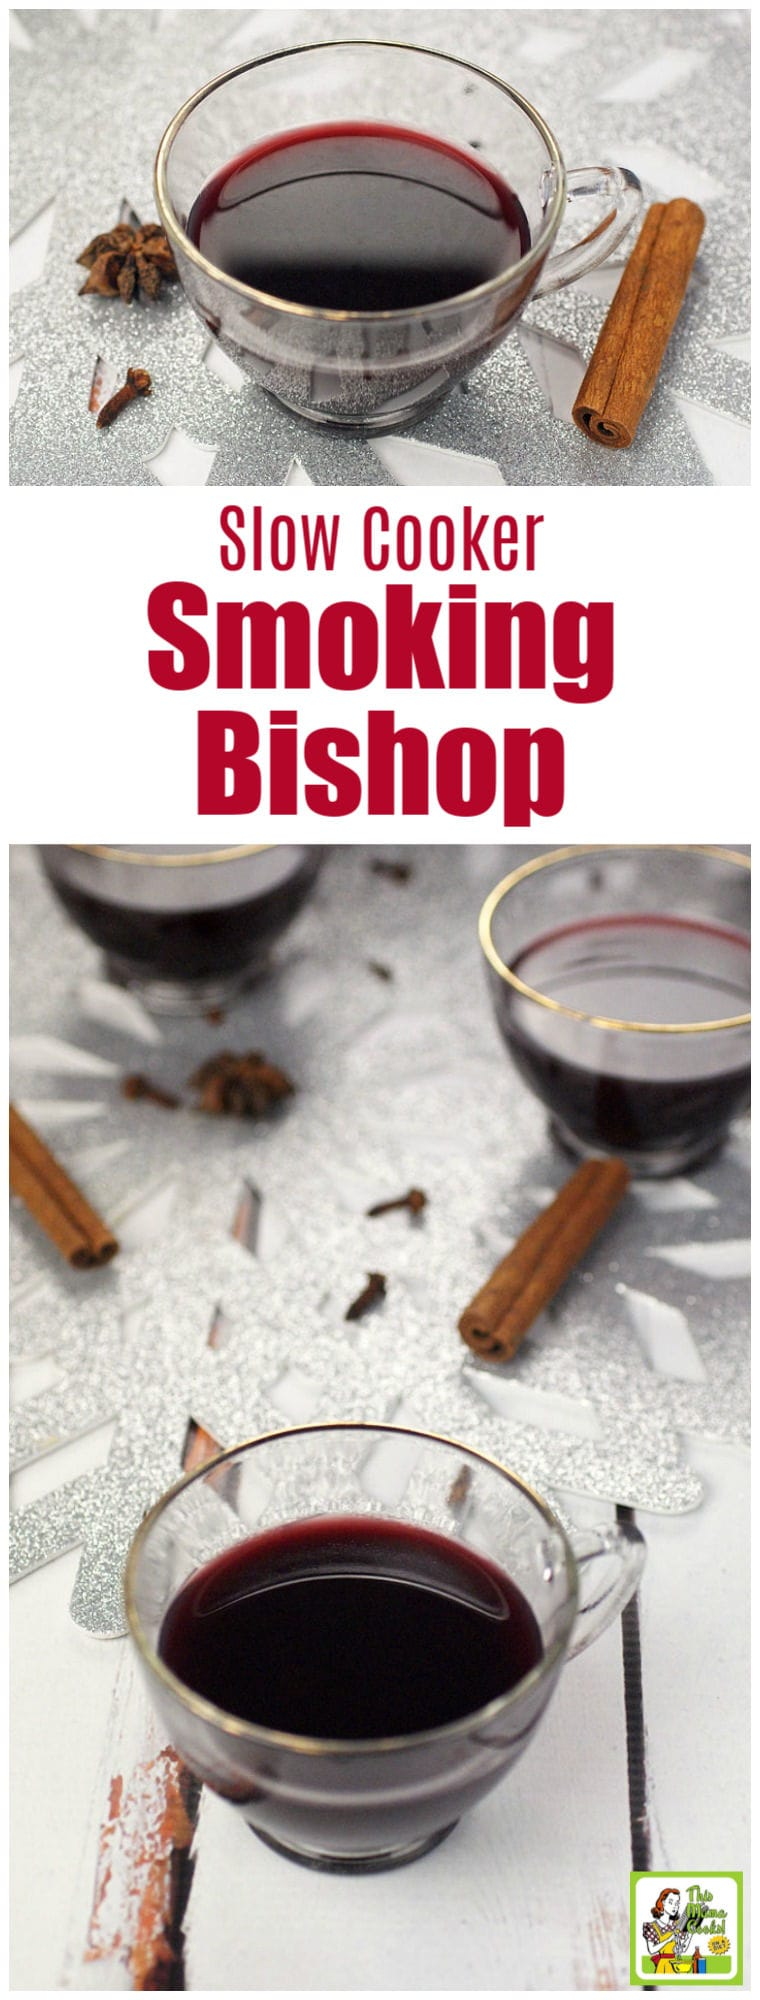 Slow Cooker Smoking Bishop